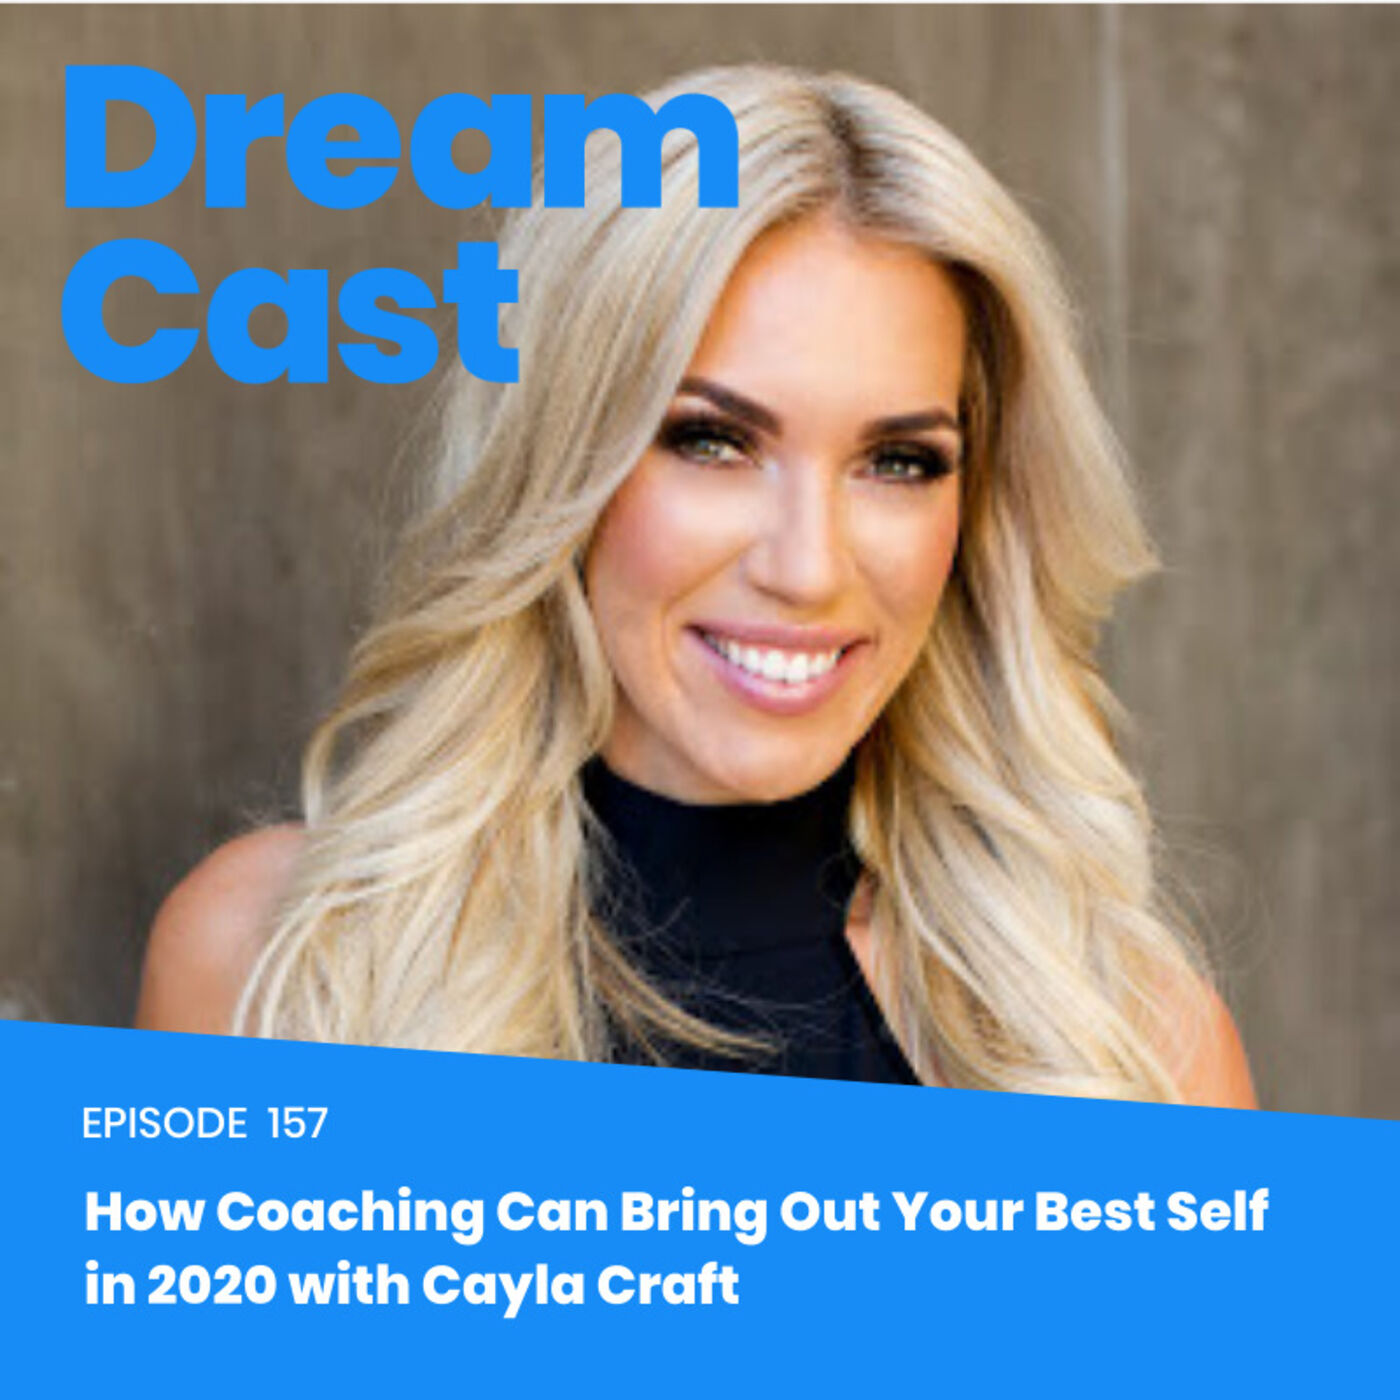 Episode 157 – How Coaching Can Bring Out Your Best Self in 2020 with Cayla Craft